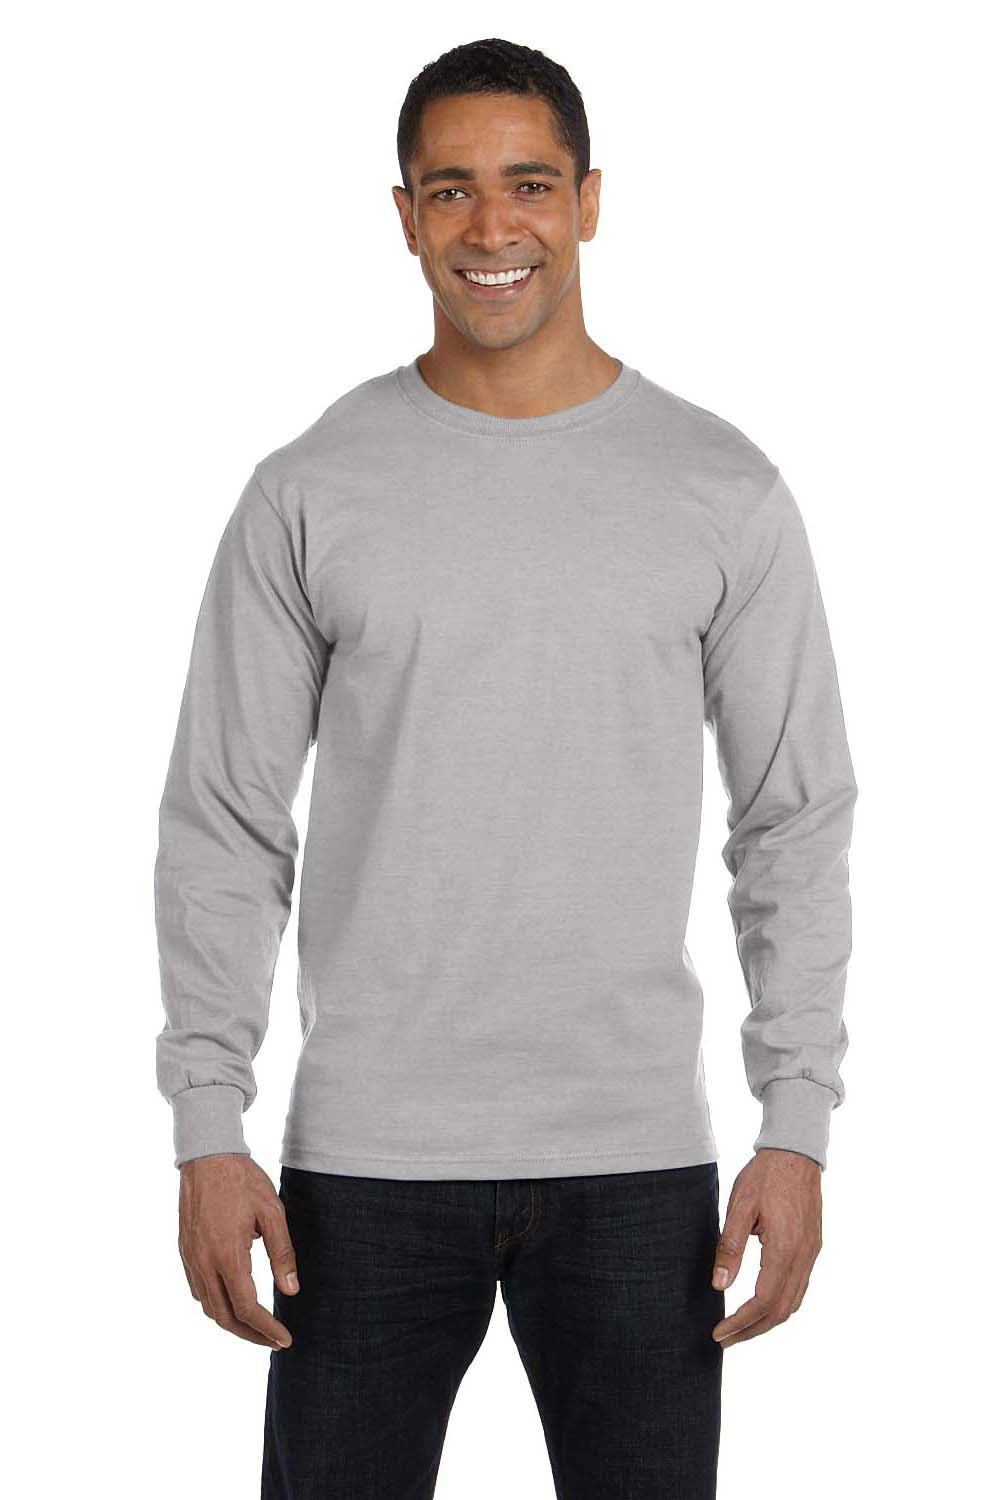 Hanes 5286 Mens ComfortSoft Long Sleeve Crewneck T-Shirt Light Steel Grey Front